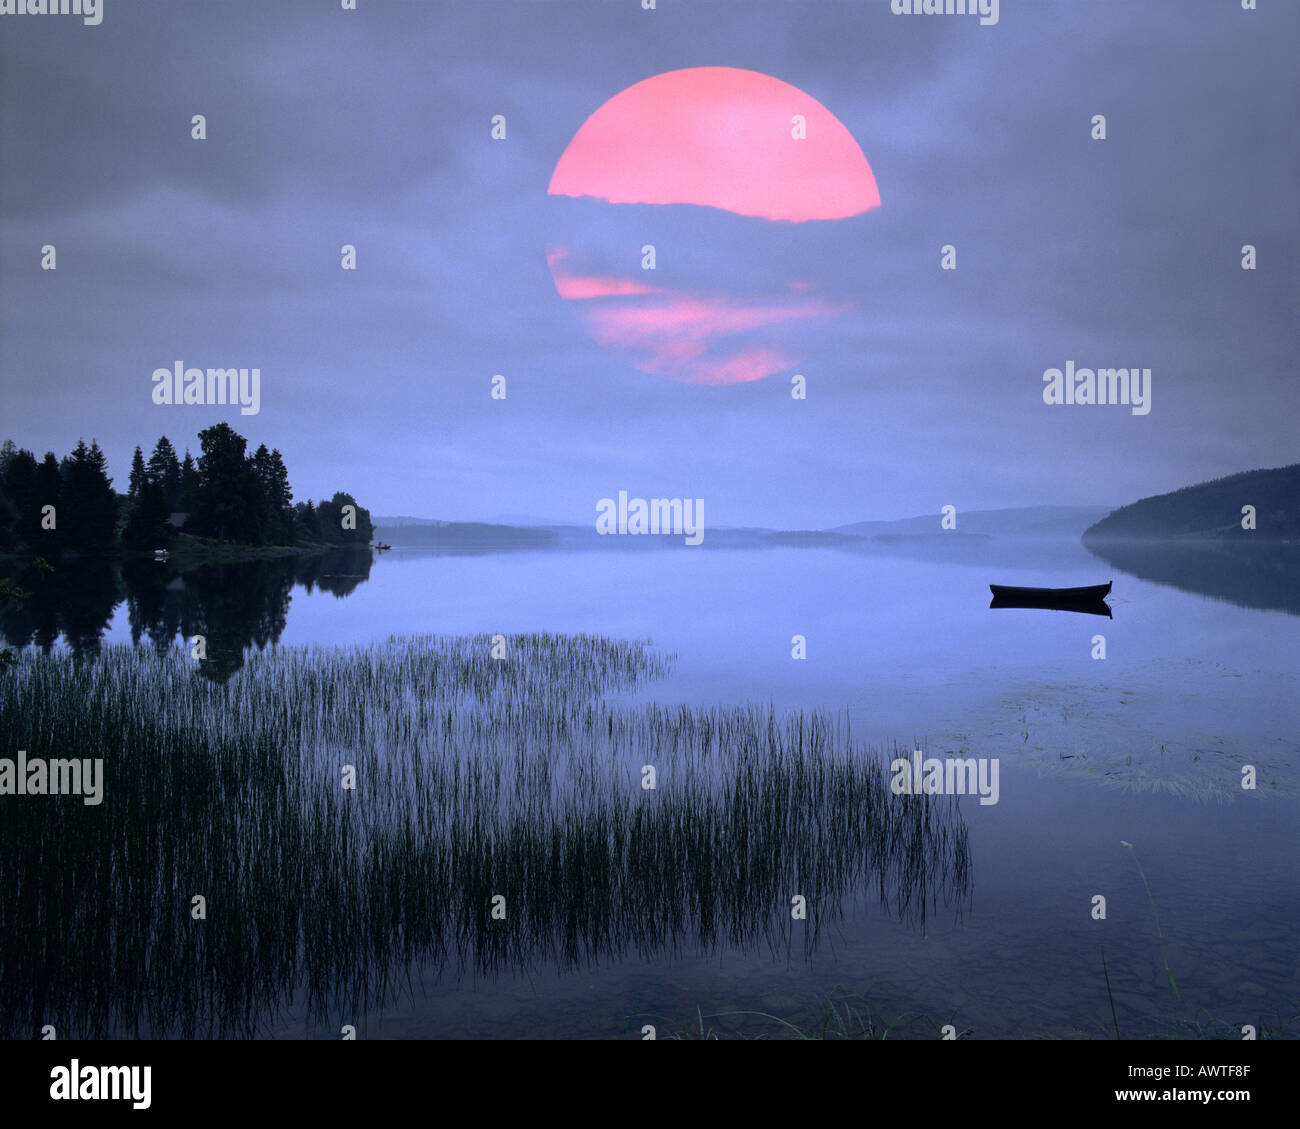 N   NORD TRONDELAG: Lake Snasavatnet at sunset - Stock Image